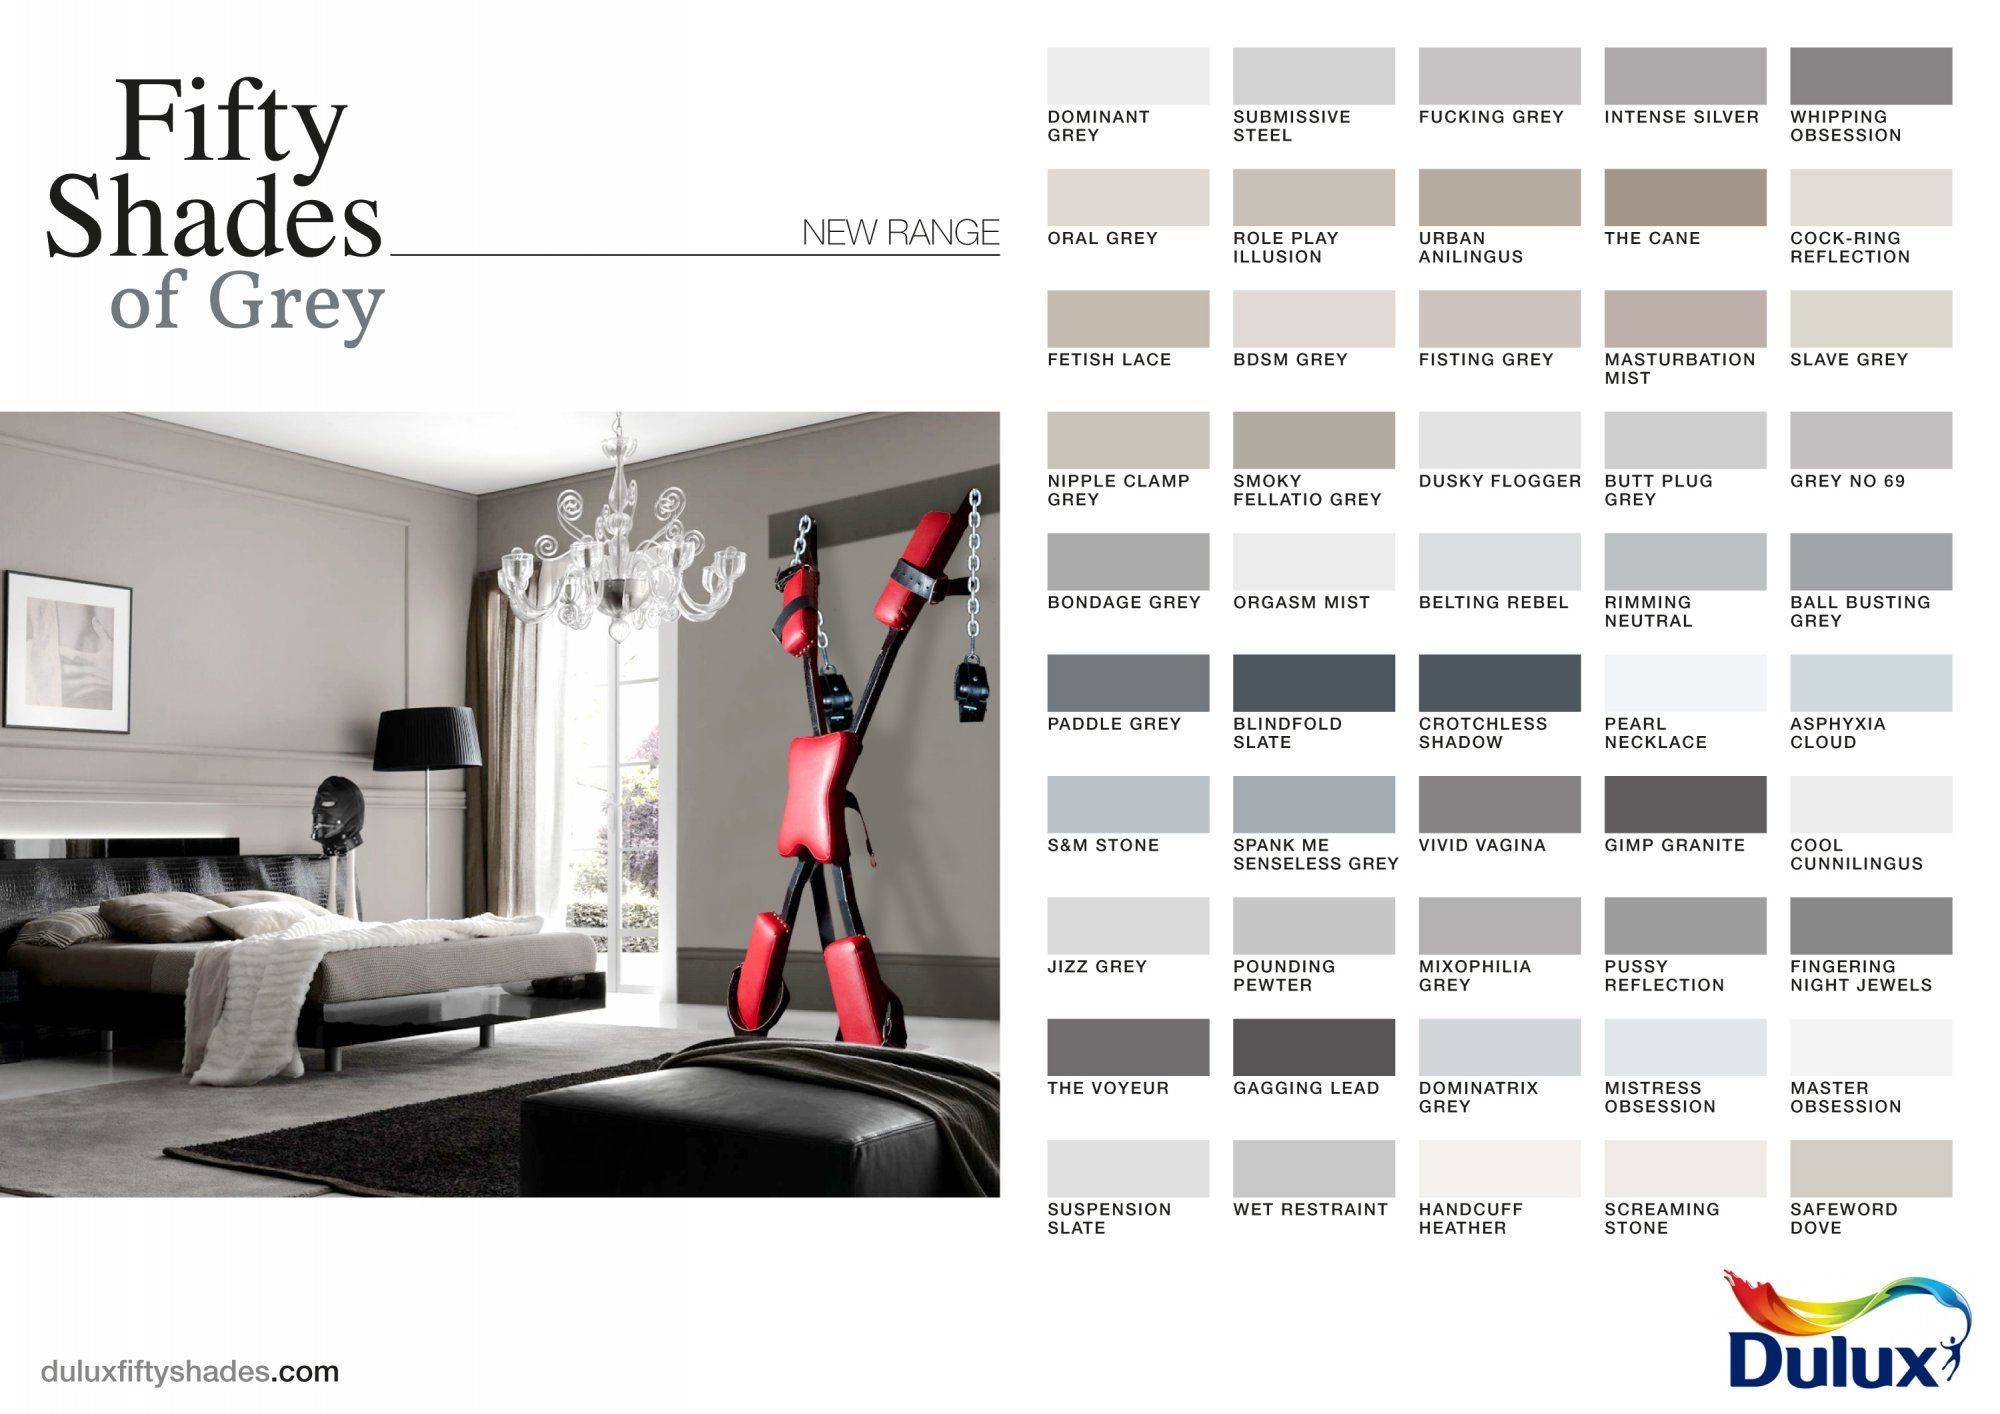 dulux shades of grey skiddaddle shades of grey still advertising their fifty shades of grey paints but adding a bit of kink from the books by adding the bondage equipment to give it the hilarity and